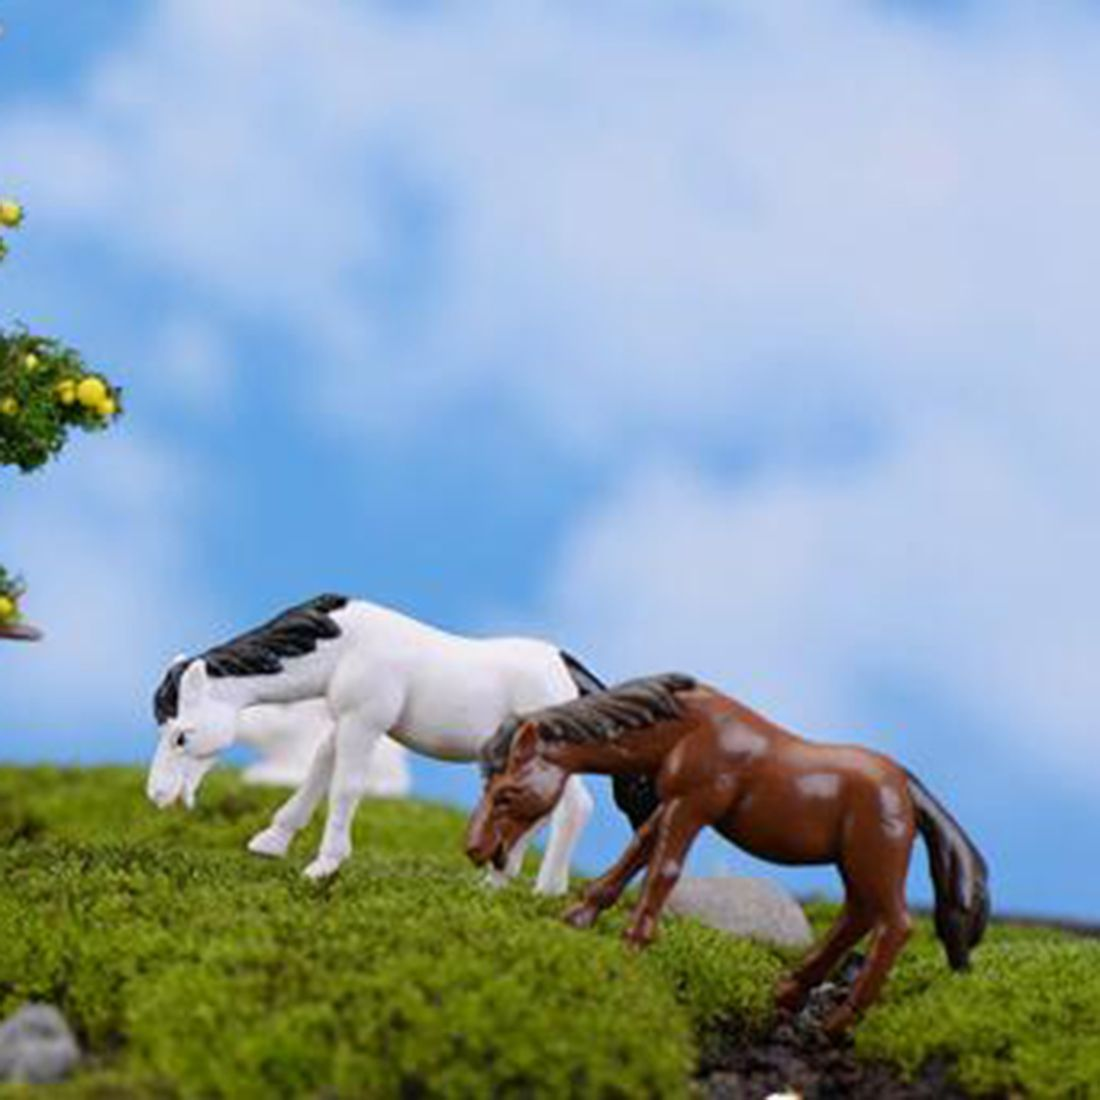 Perfect Cheap Ornaments Garden, Buy Quality Garden Ornaments Directly From China  Decorative Garden Ornaments Suppliers: Signs Portal Mini Horse Ornament  Garden ...